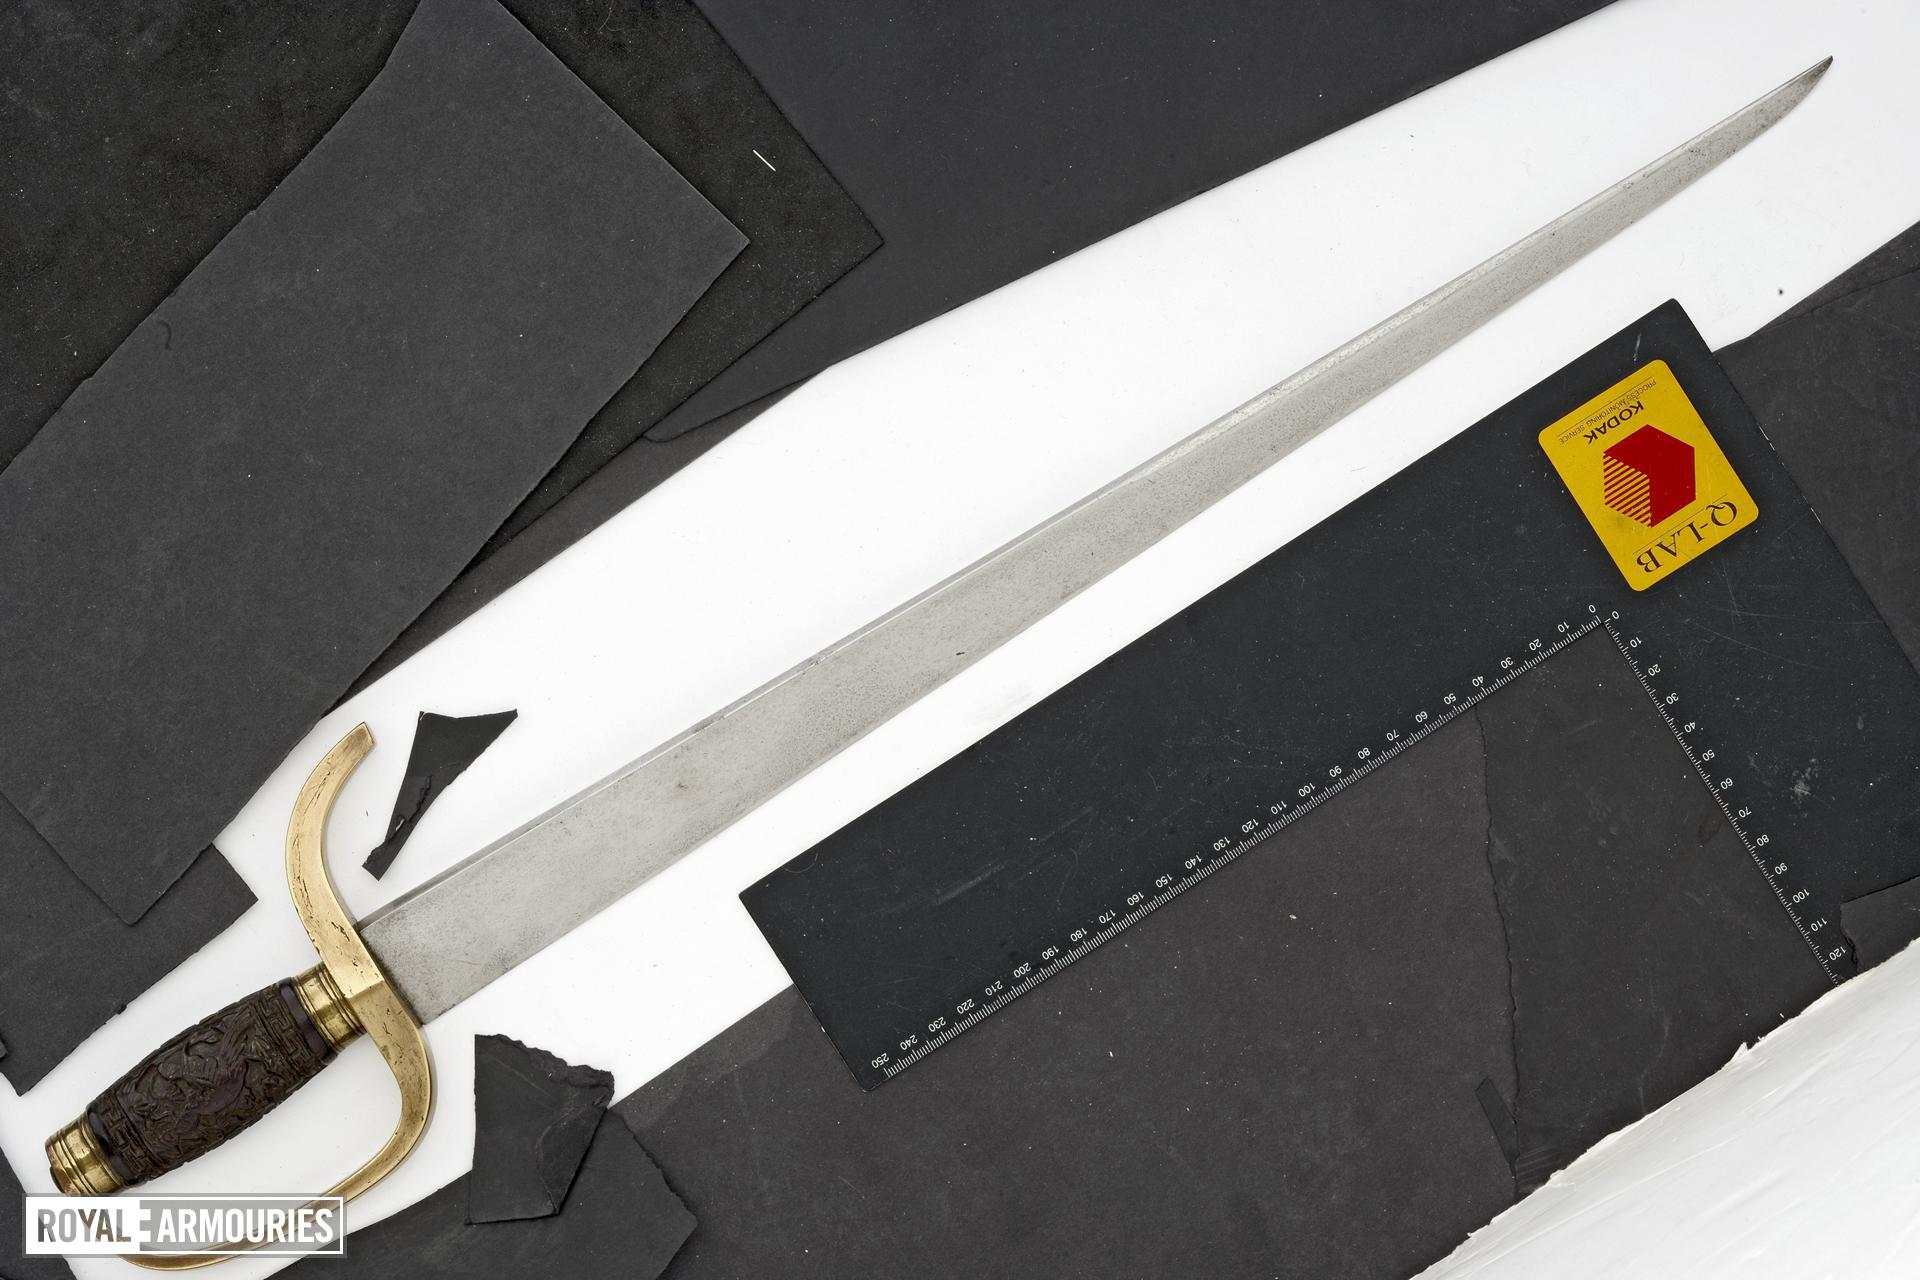 Pair of butterfly knives (hodiedao)